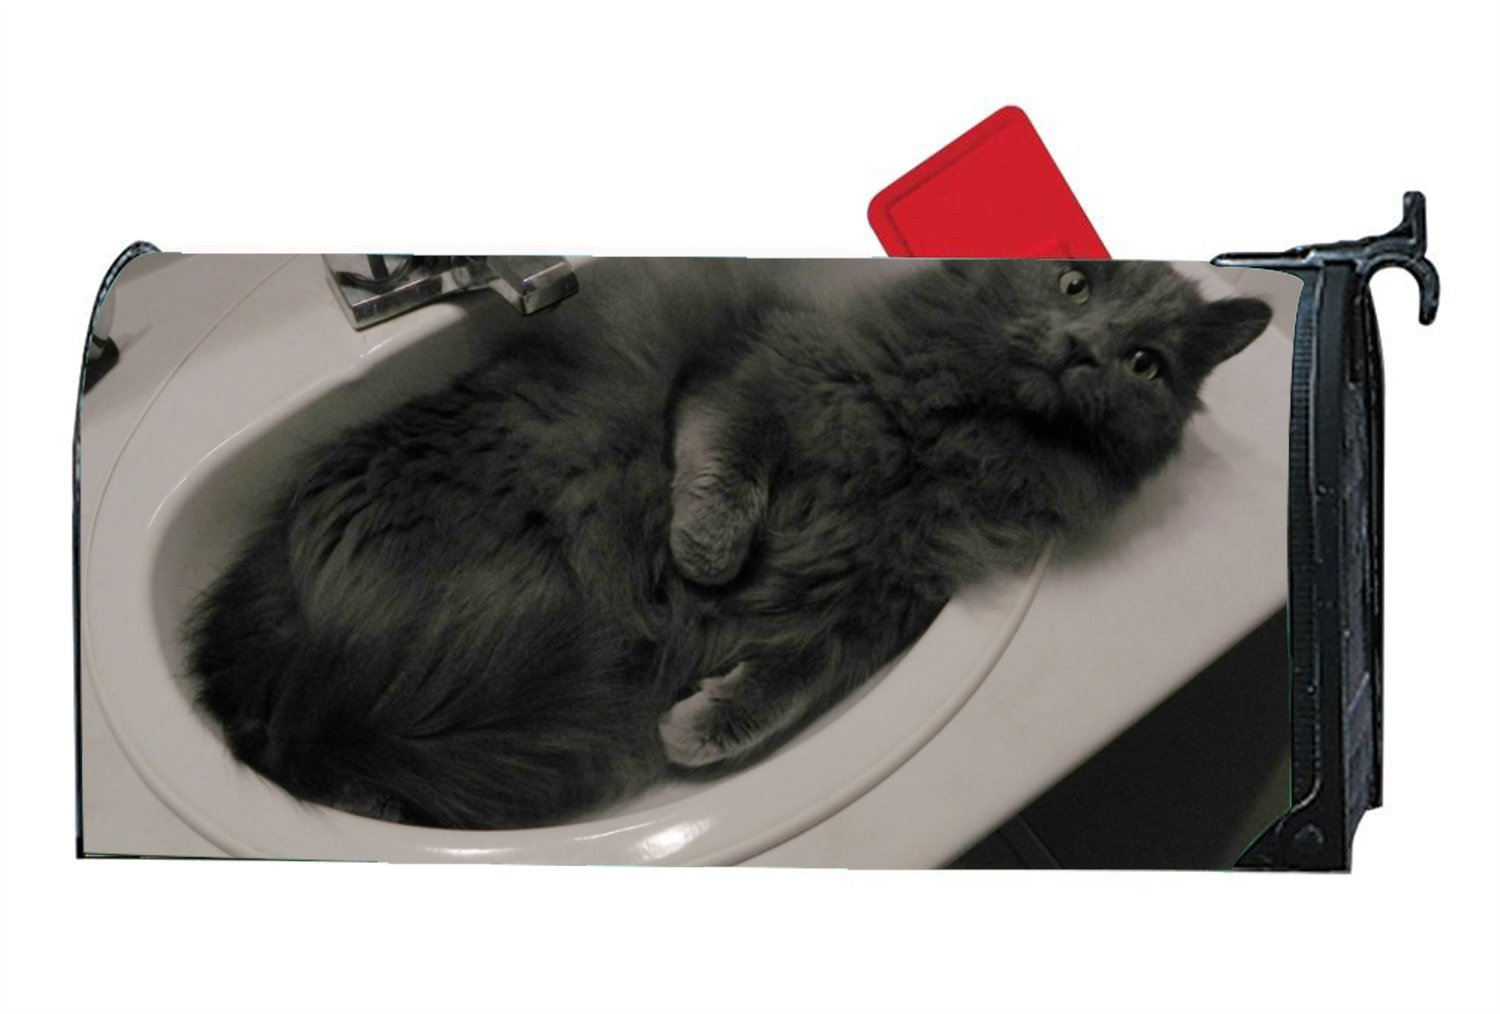 JuLeFan Cat In Sink Personalized Mailbox Cover Magnetic Fits Standard-Sized Mailboxes